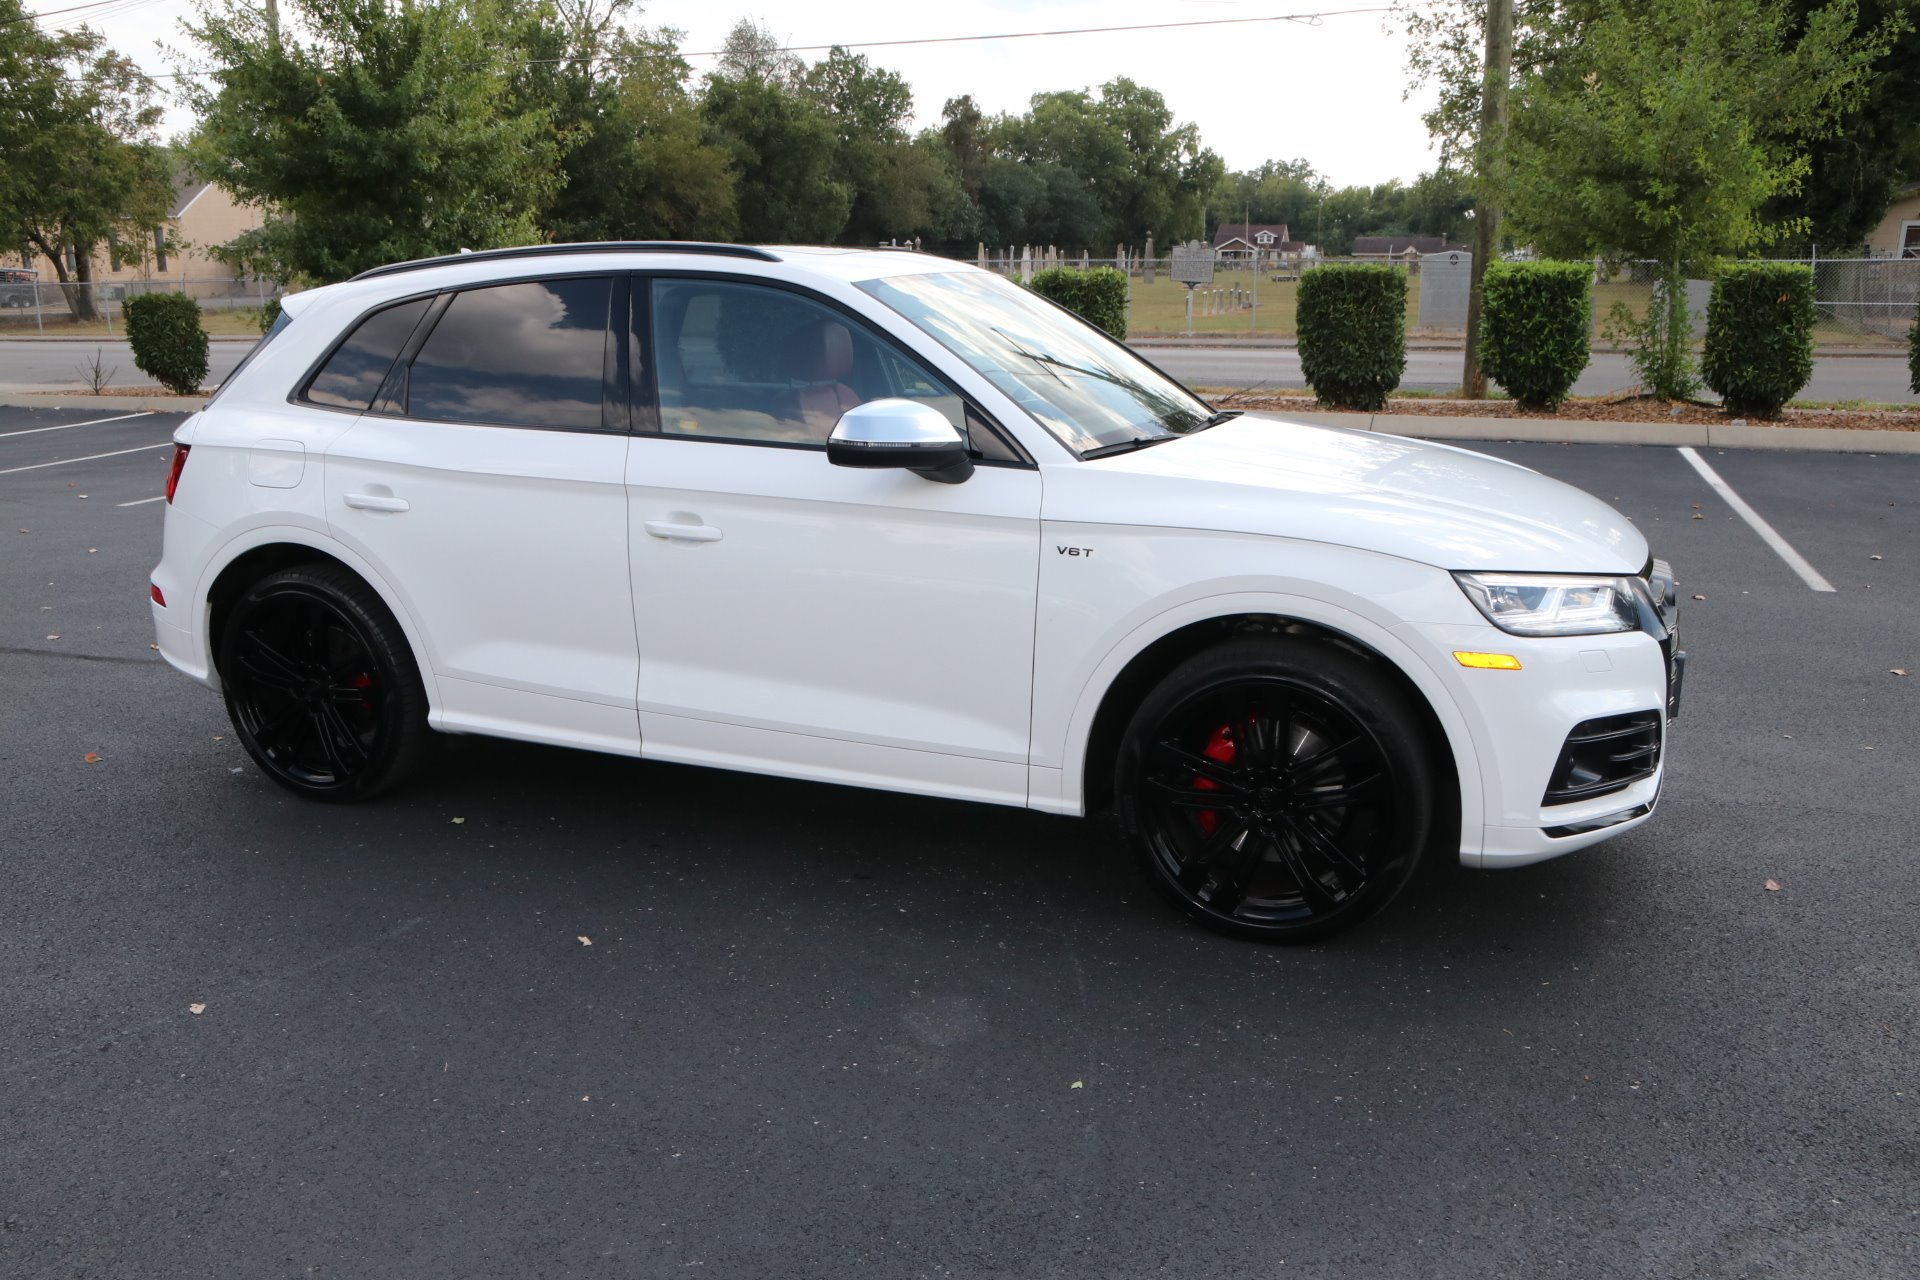 Used 2018 Audi SQ5 PRESTIGE 3.0 TFSI S SPORT AWD W/NAV 3.0T quattro Prestige for sale Sold at Auto Collection in Murfreesboro TN 37130 1